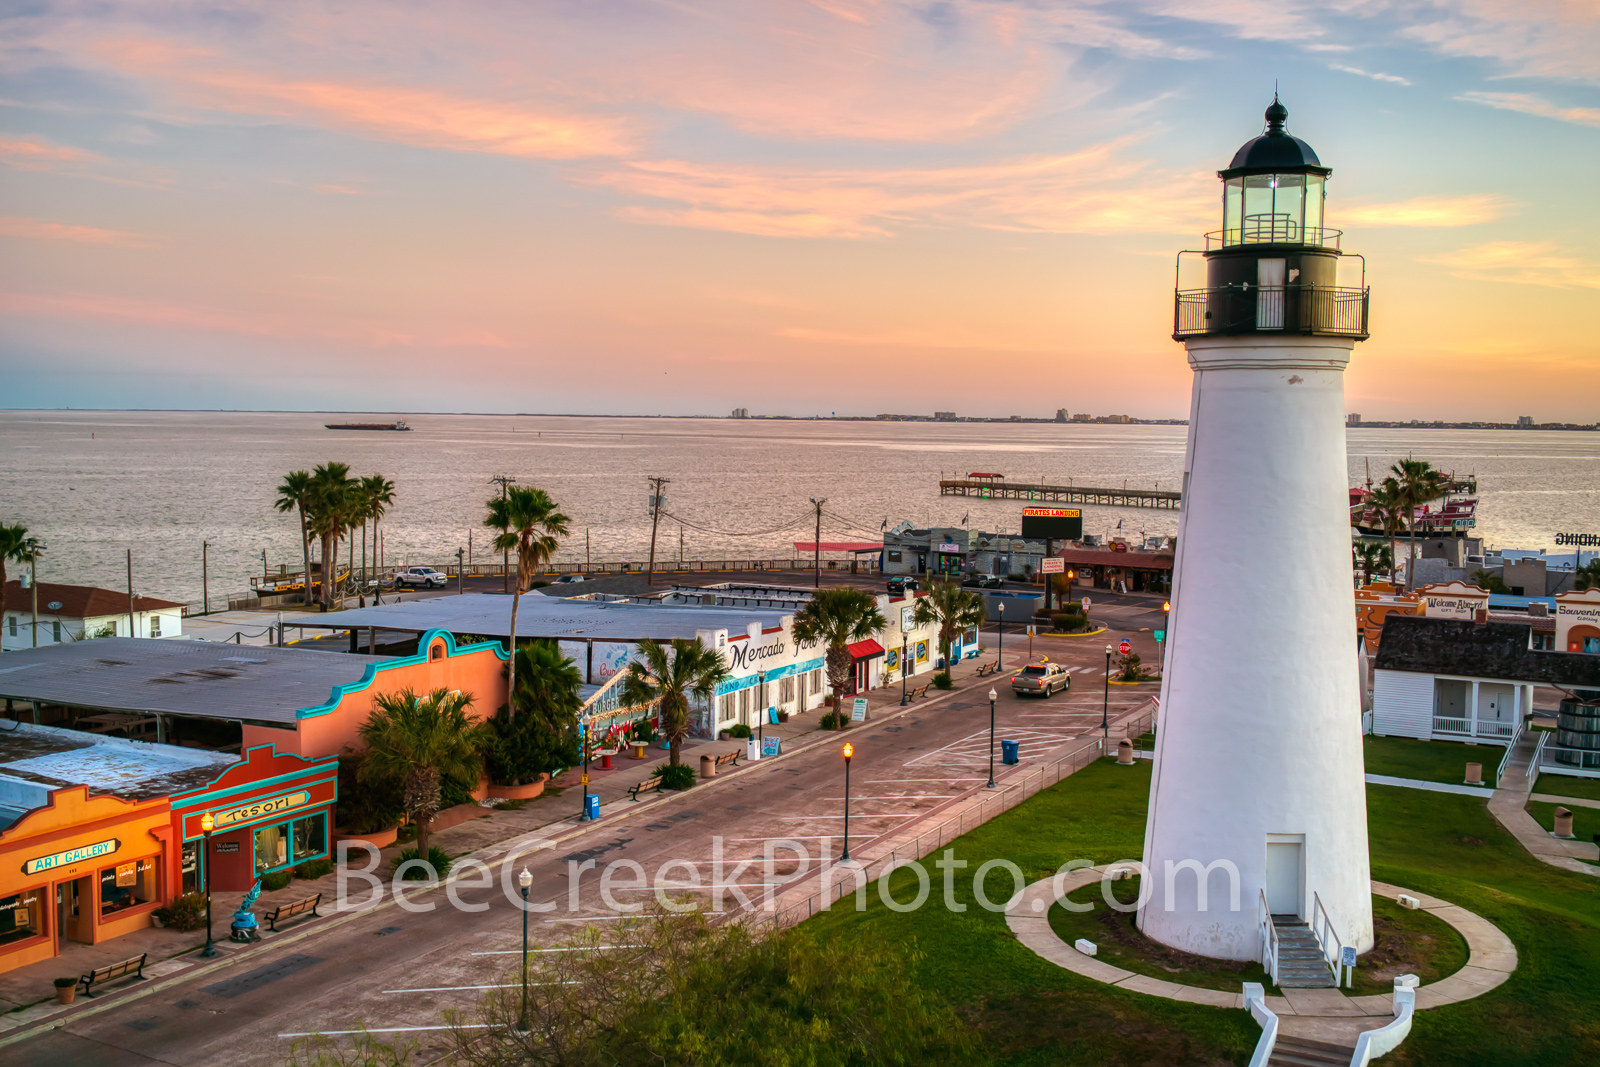 Port Isabel Downtown and Lighthouse - We like this capture of the downtown shops along with the lighthouse as it looks over the...